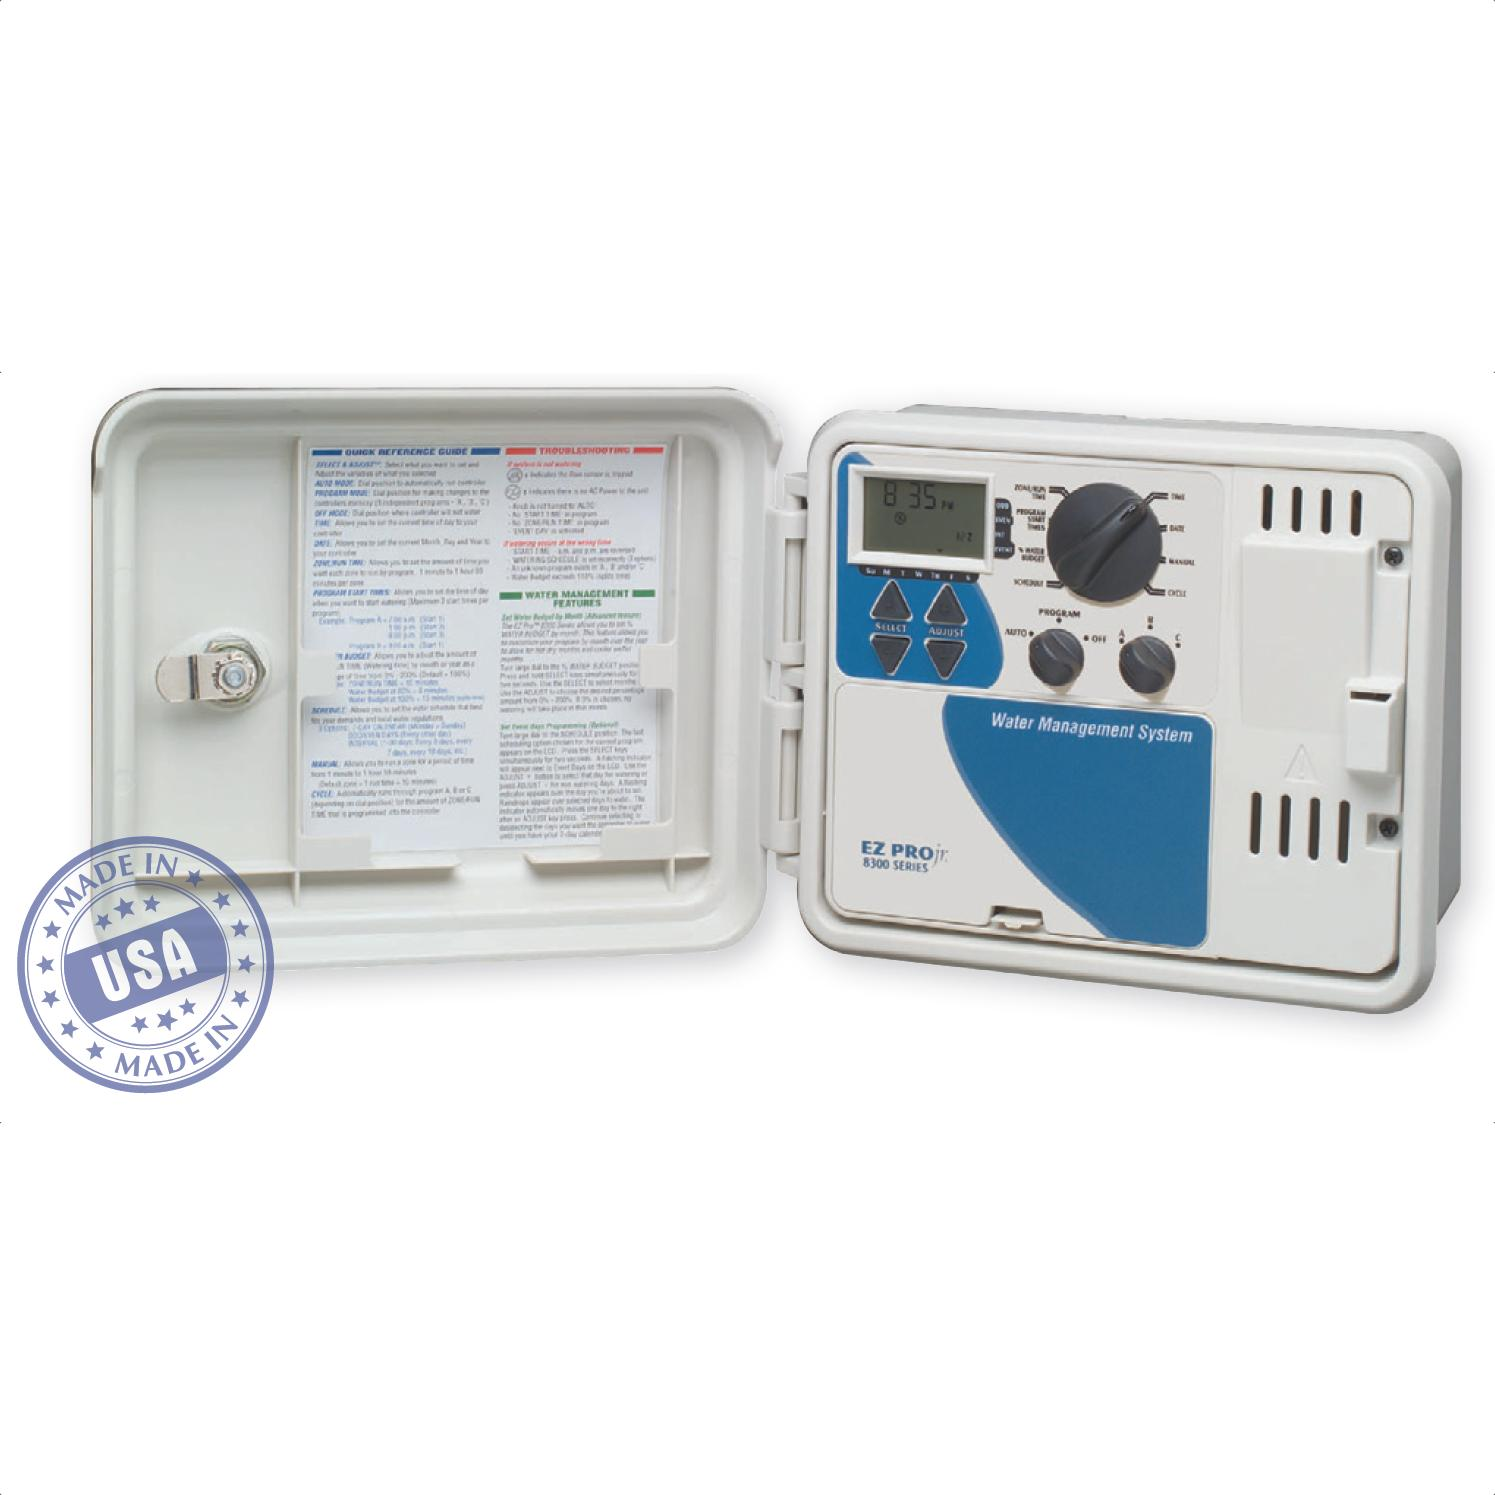 Signature 8300 Series Outdoor Irrigation Controller & Timer